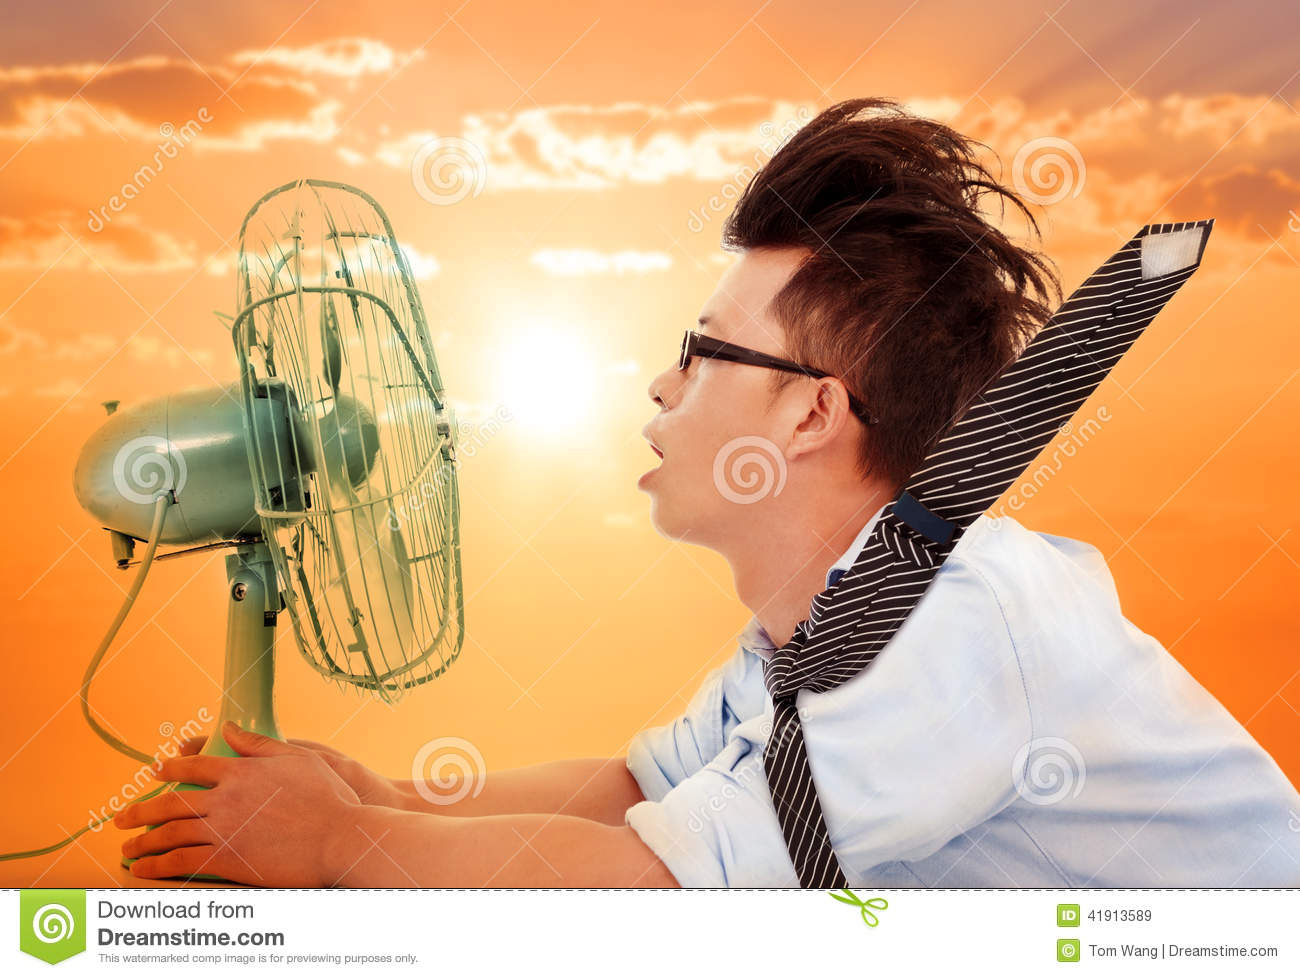 People Using Electric Fan : The heat wave is coming business man holding a electric